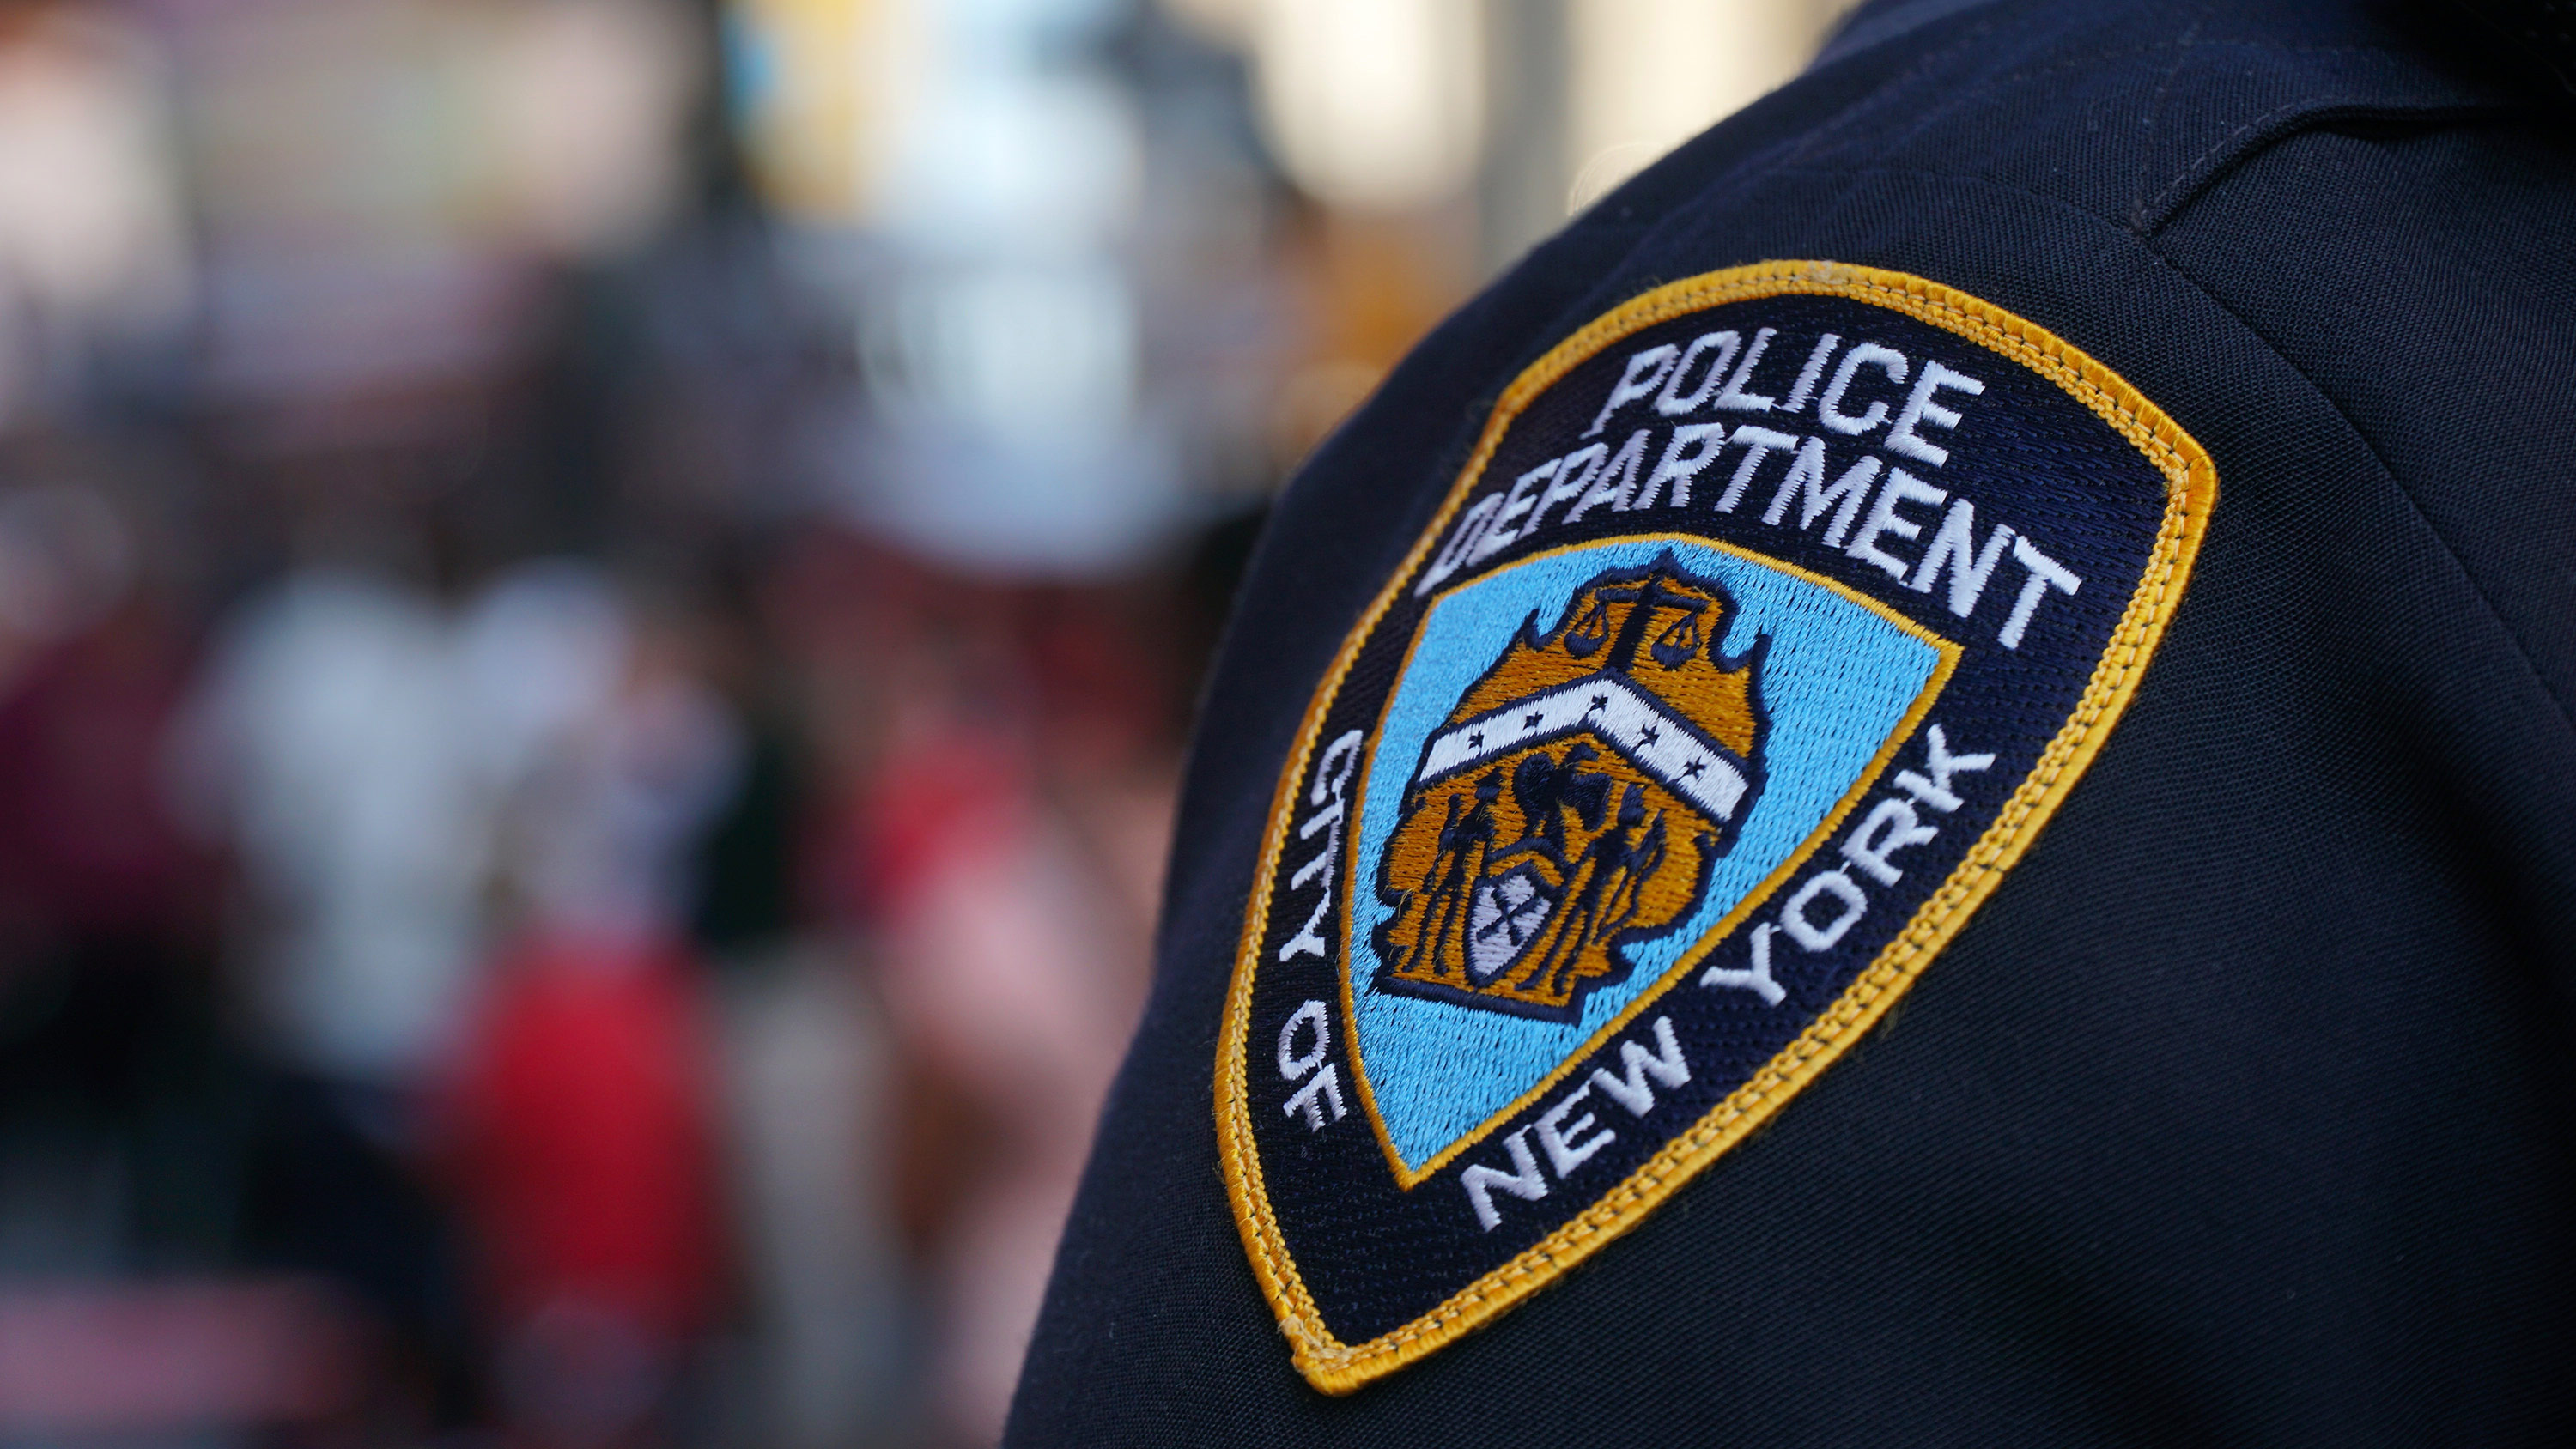 NYPD investigating incident where officer appears to say 'Trump 2020' over patrol car speaker